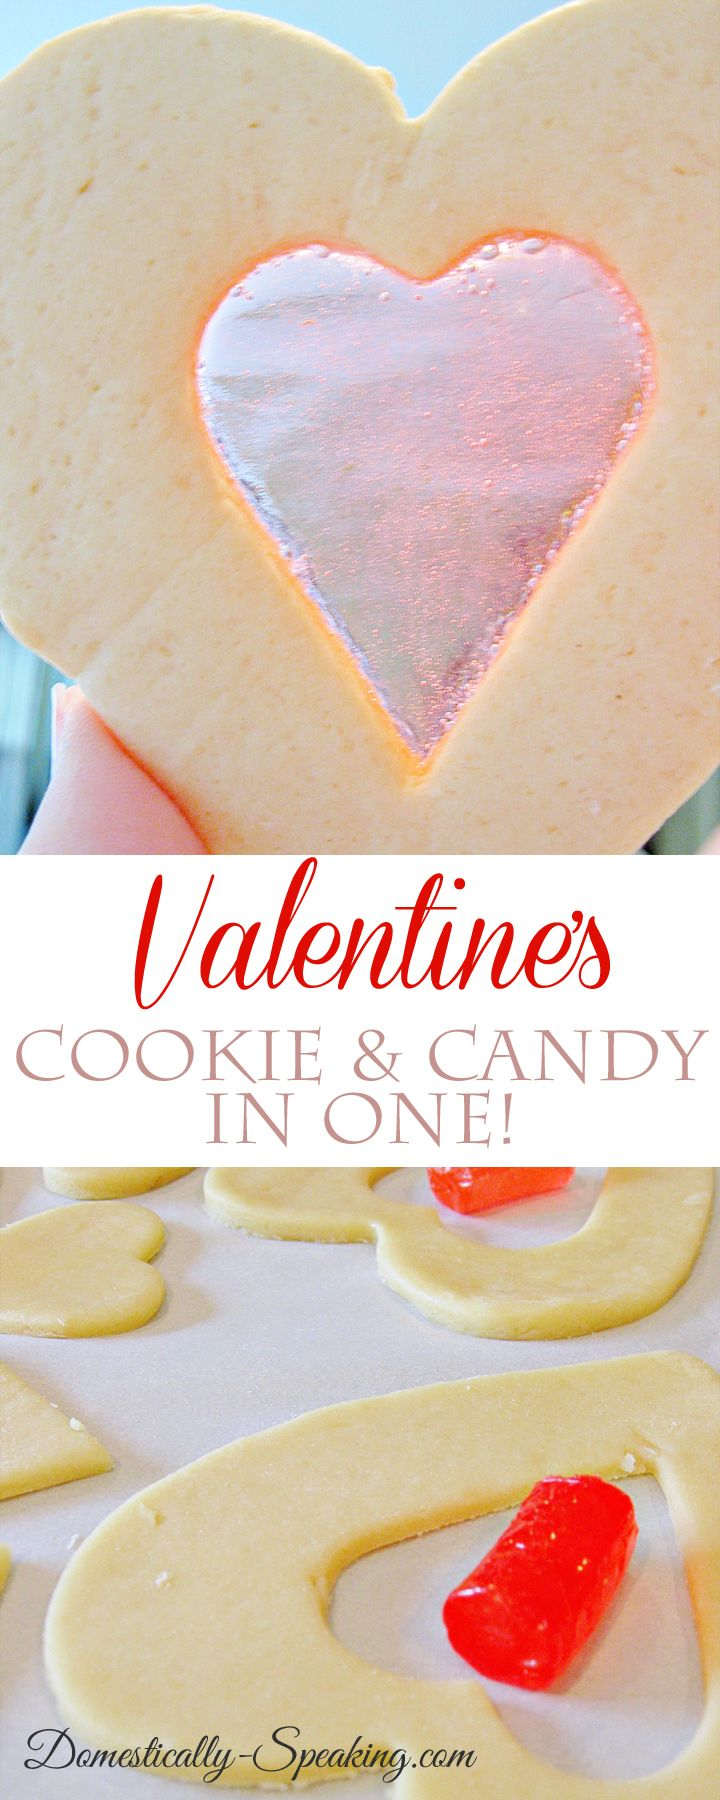 Valentine's Cookie - it's a cookie and candy in one! So simple and super cute…